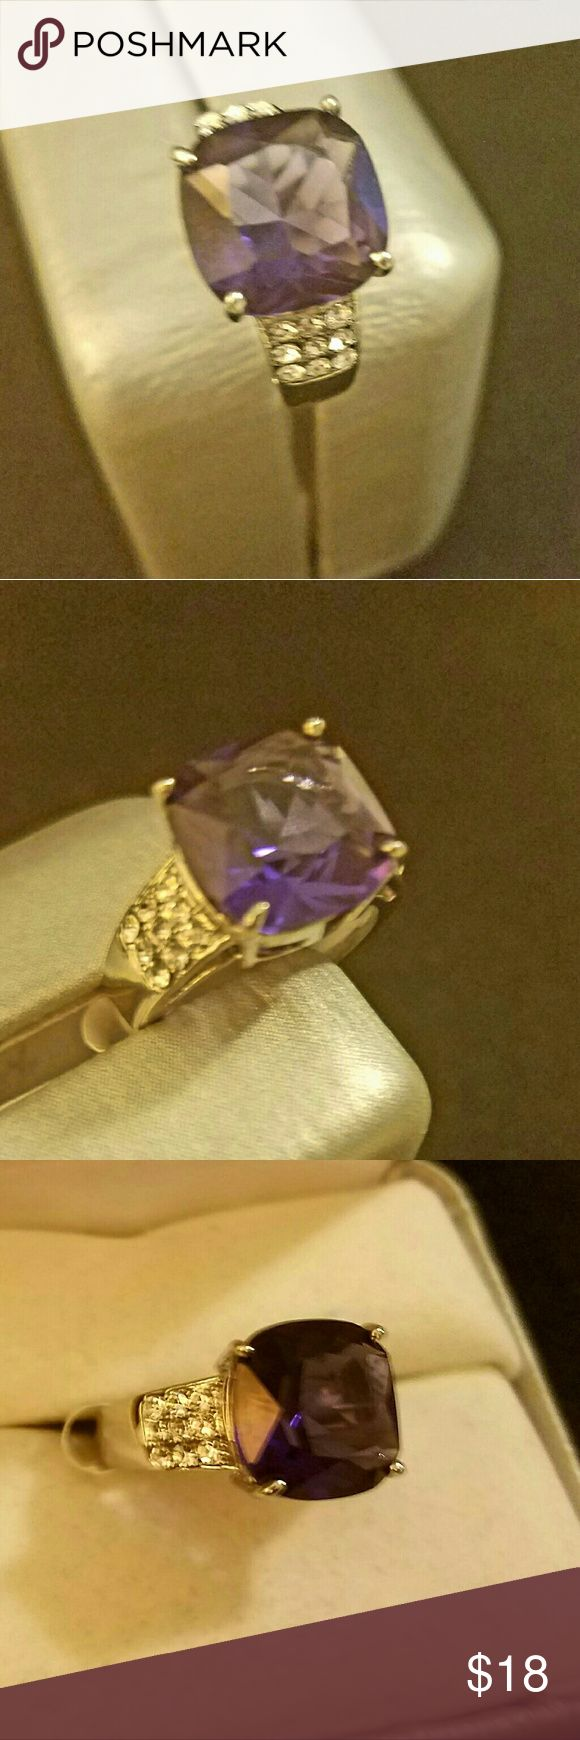 Sterling Silver Amethyst Ring PLEASE LET ME KNOW WHAT SIZE YOU NEED BEFORE YOU BUY, TY!   Size 7 sterling silver stamped ring.  Gorgeous Amethyst  ring with 3 rows of czs down the sides. This is February  birthstone.  I usually sale my rings at my kiosk for $35 plus tax.  So you are getting great quality rings for half the price.   New, never worn.  Box in picture is for display purposes only. . Let me know if you need a different size because I may have it in stock.  I tried to show the…